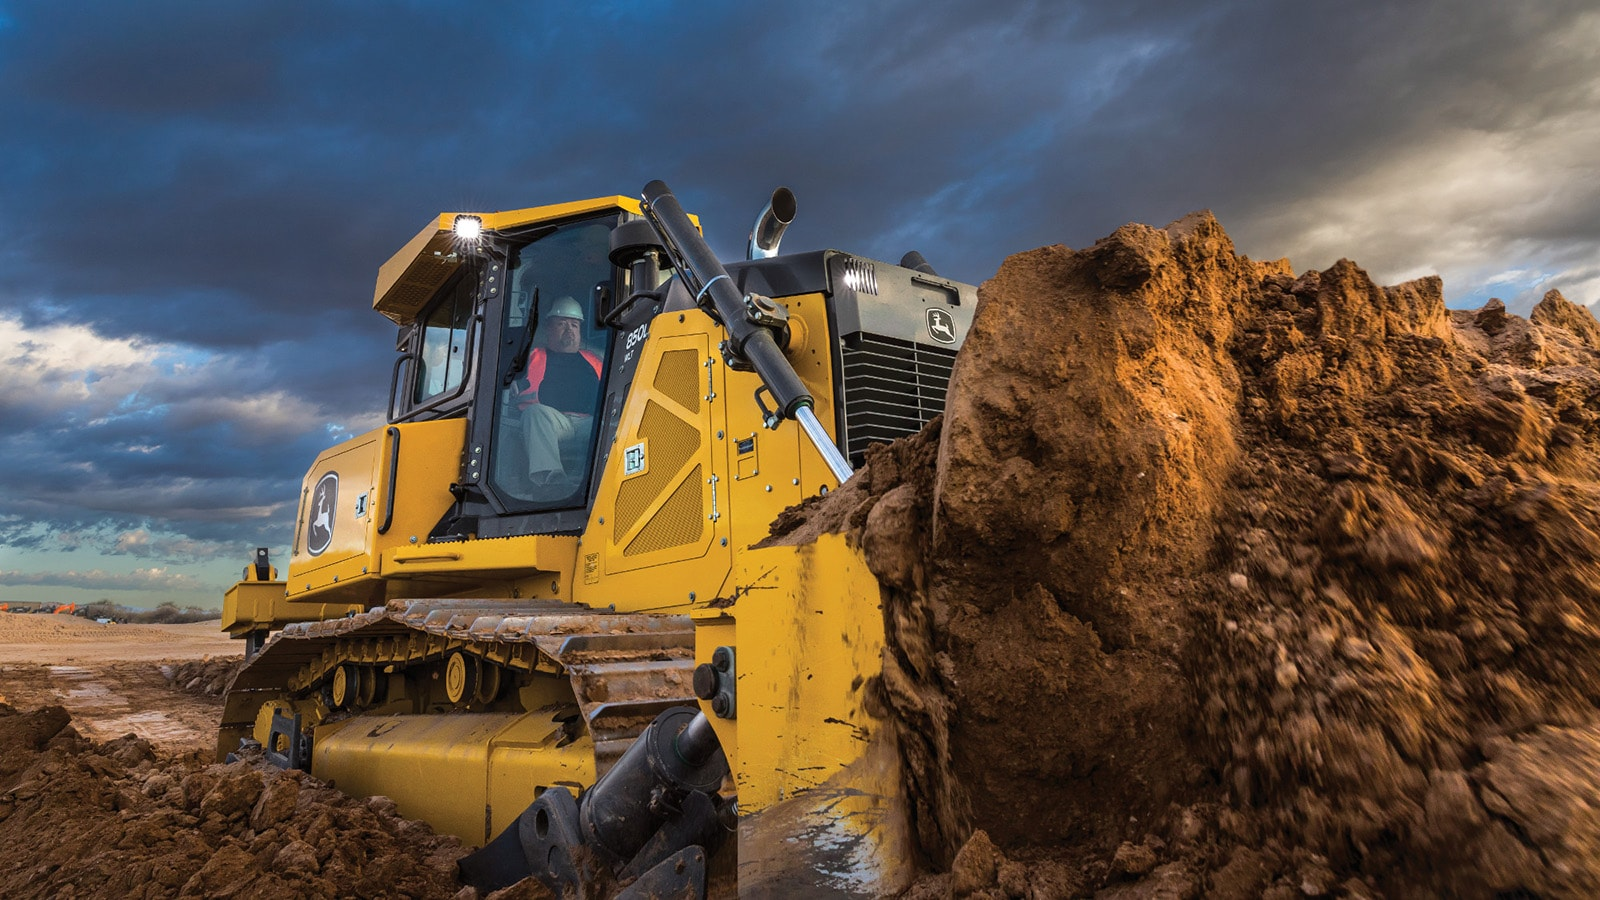 850L Dozer pushes a pile of dirt in front of a dramatic clouded sky